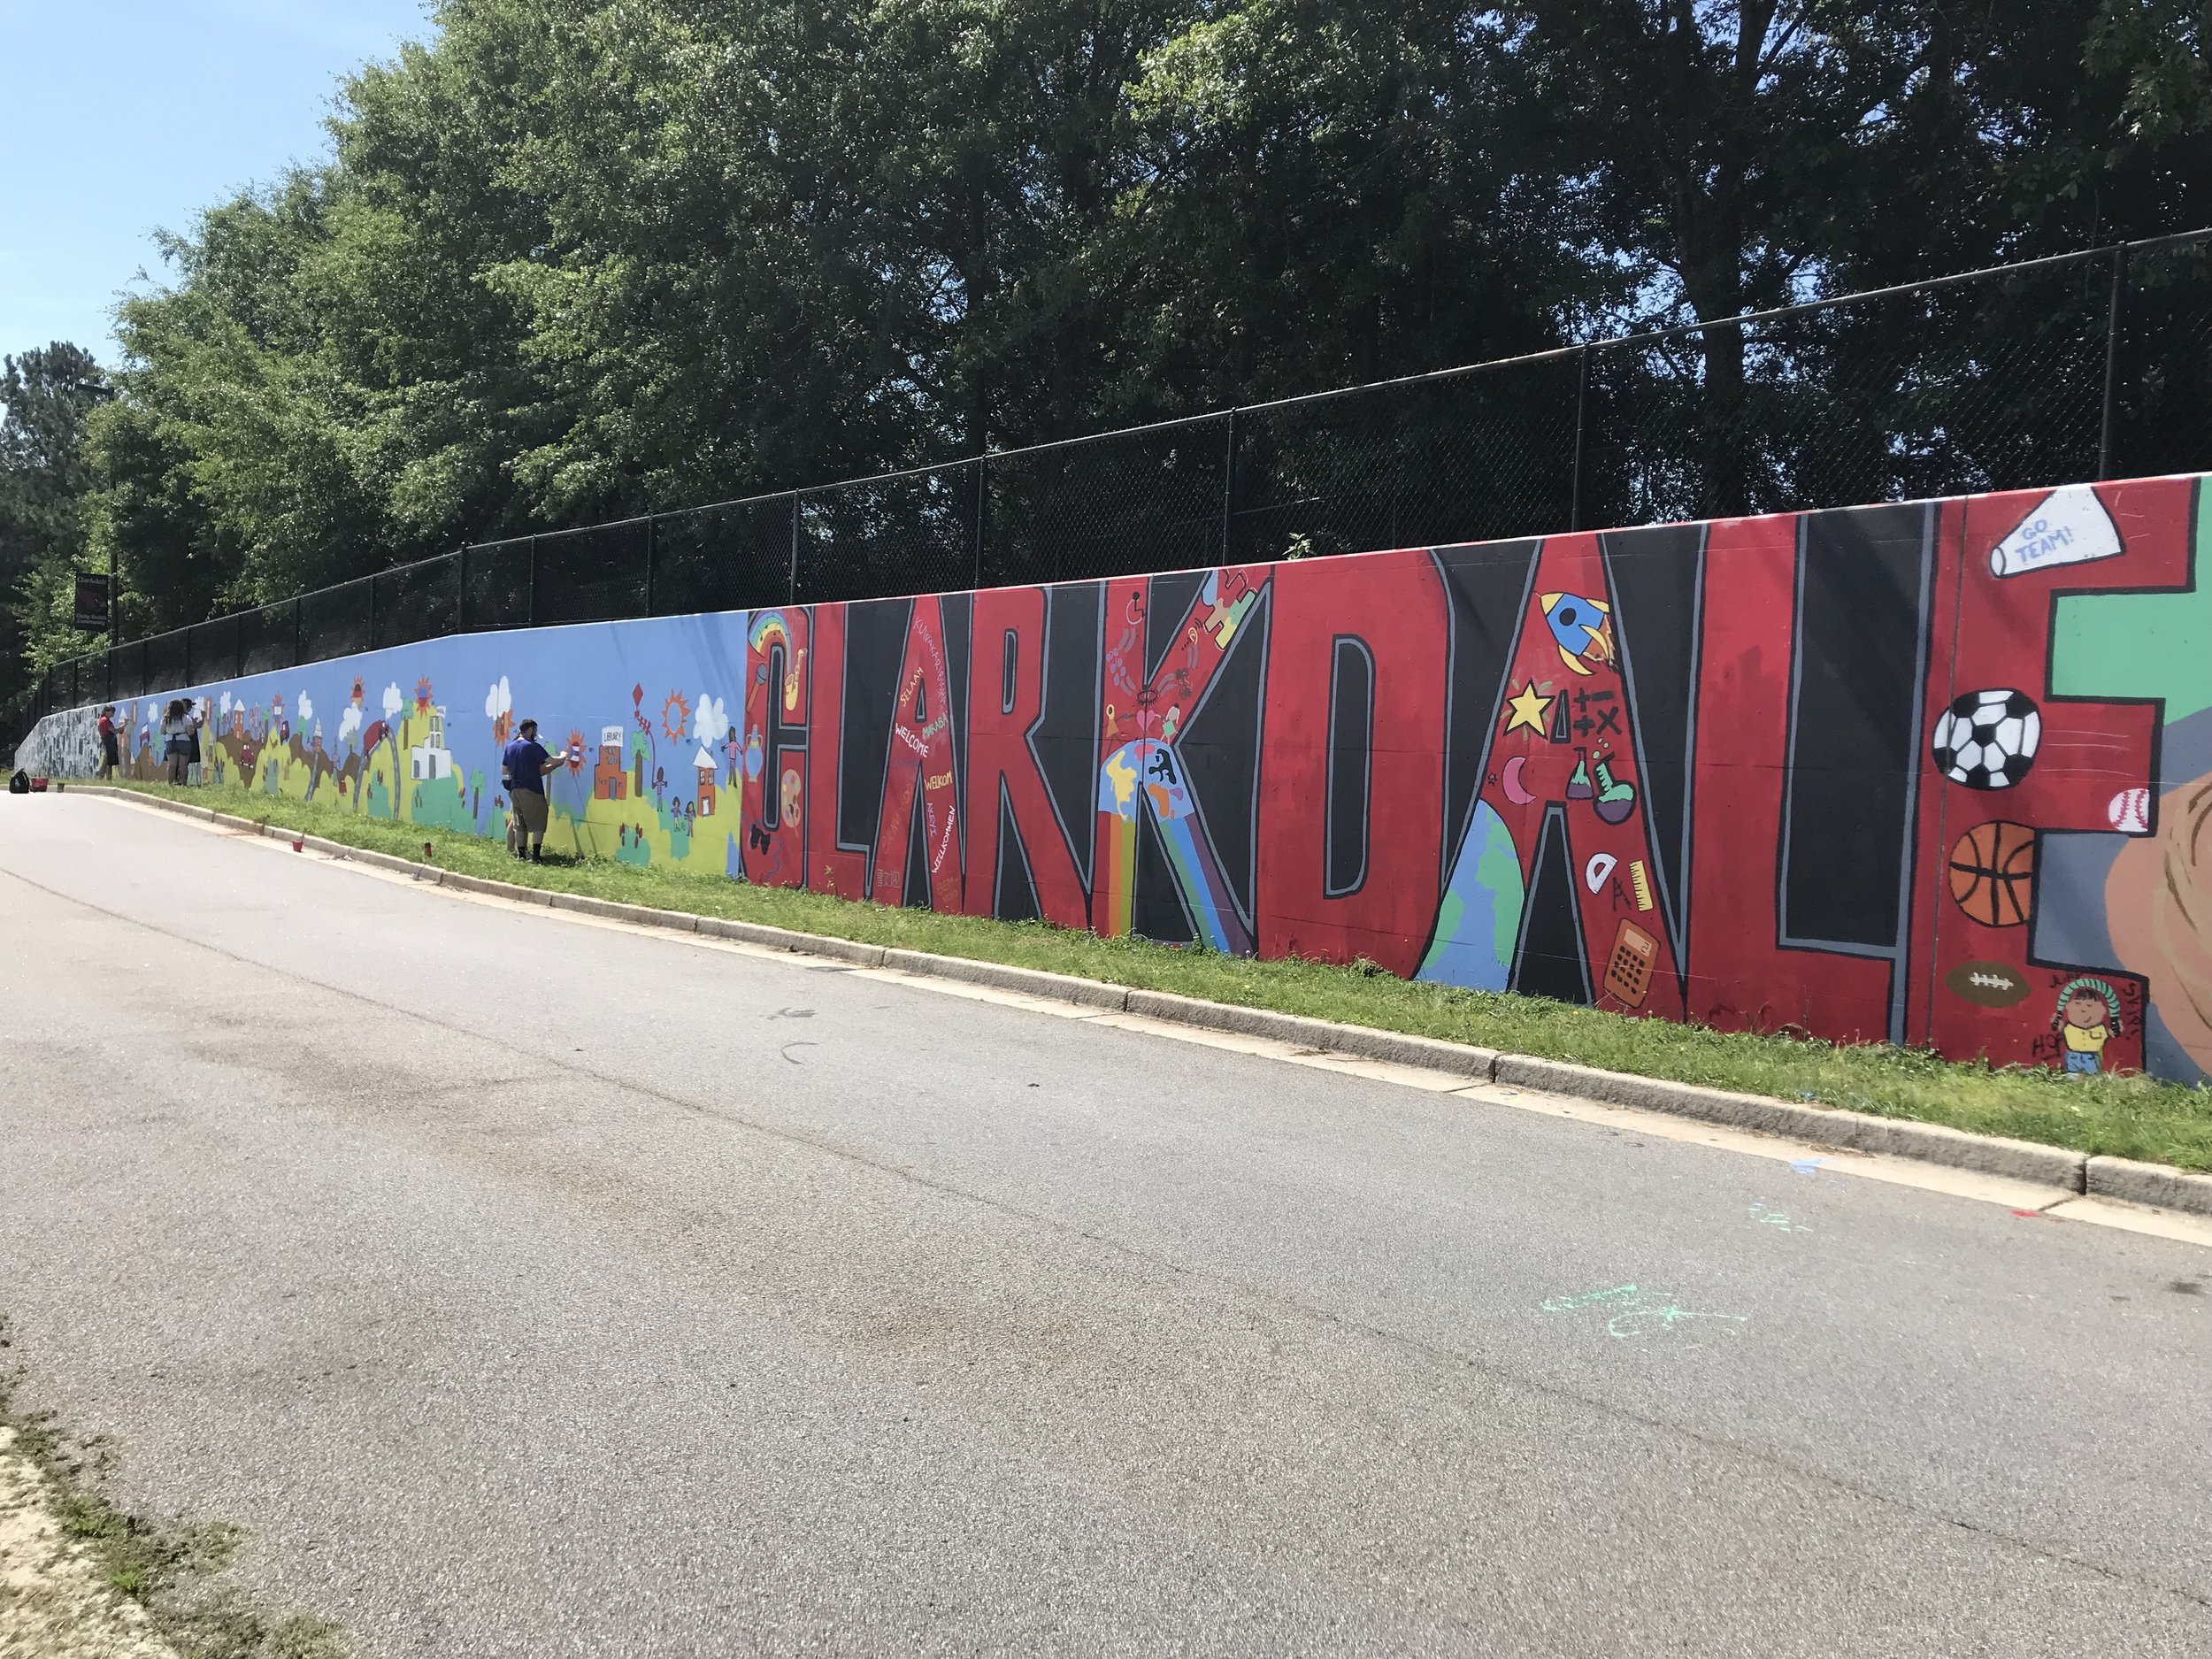 Paint Love mural at Clarkdale Elementary School